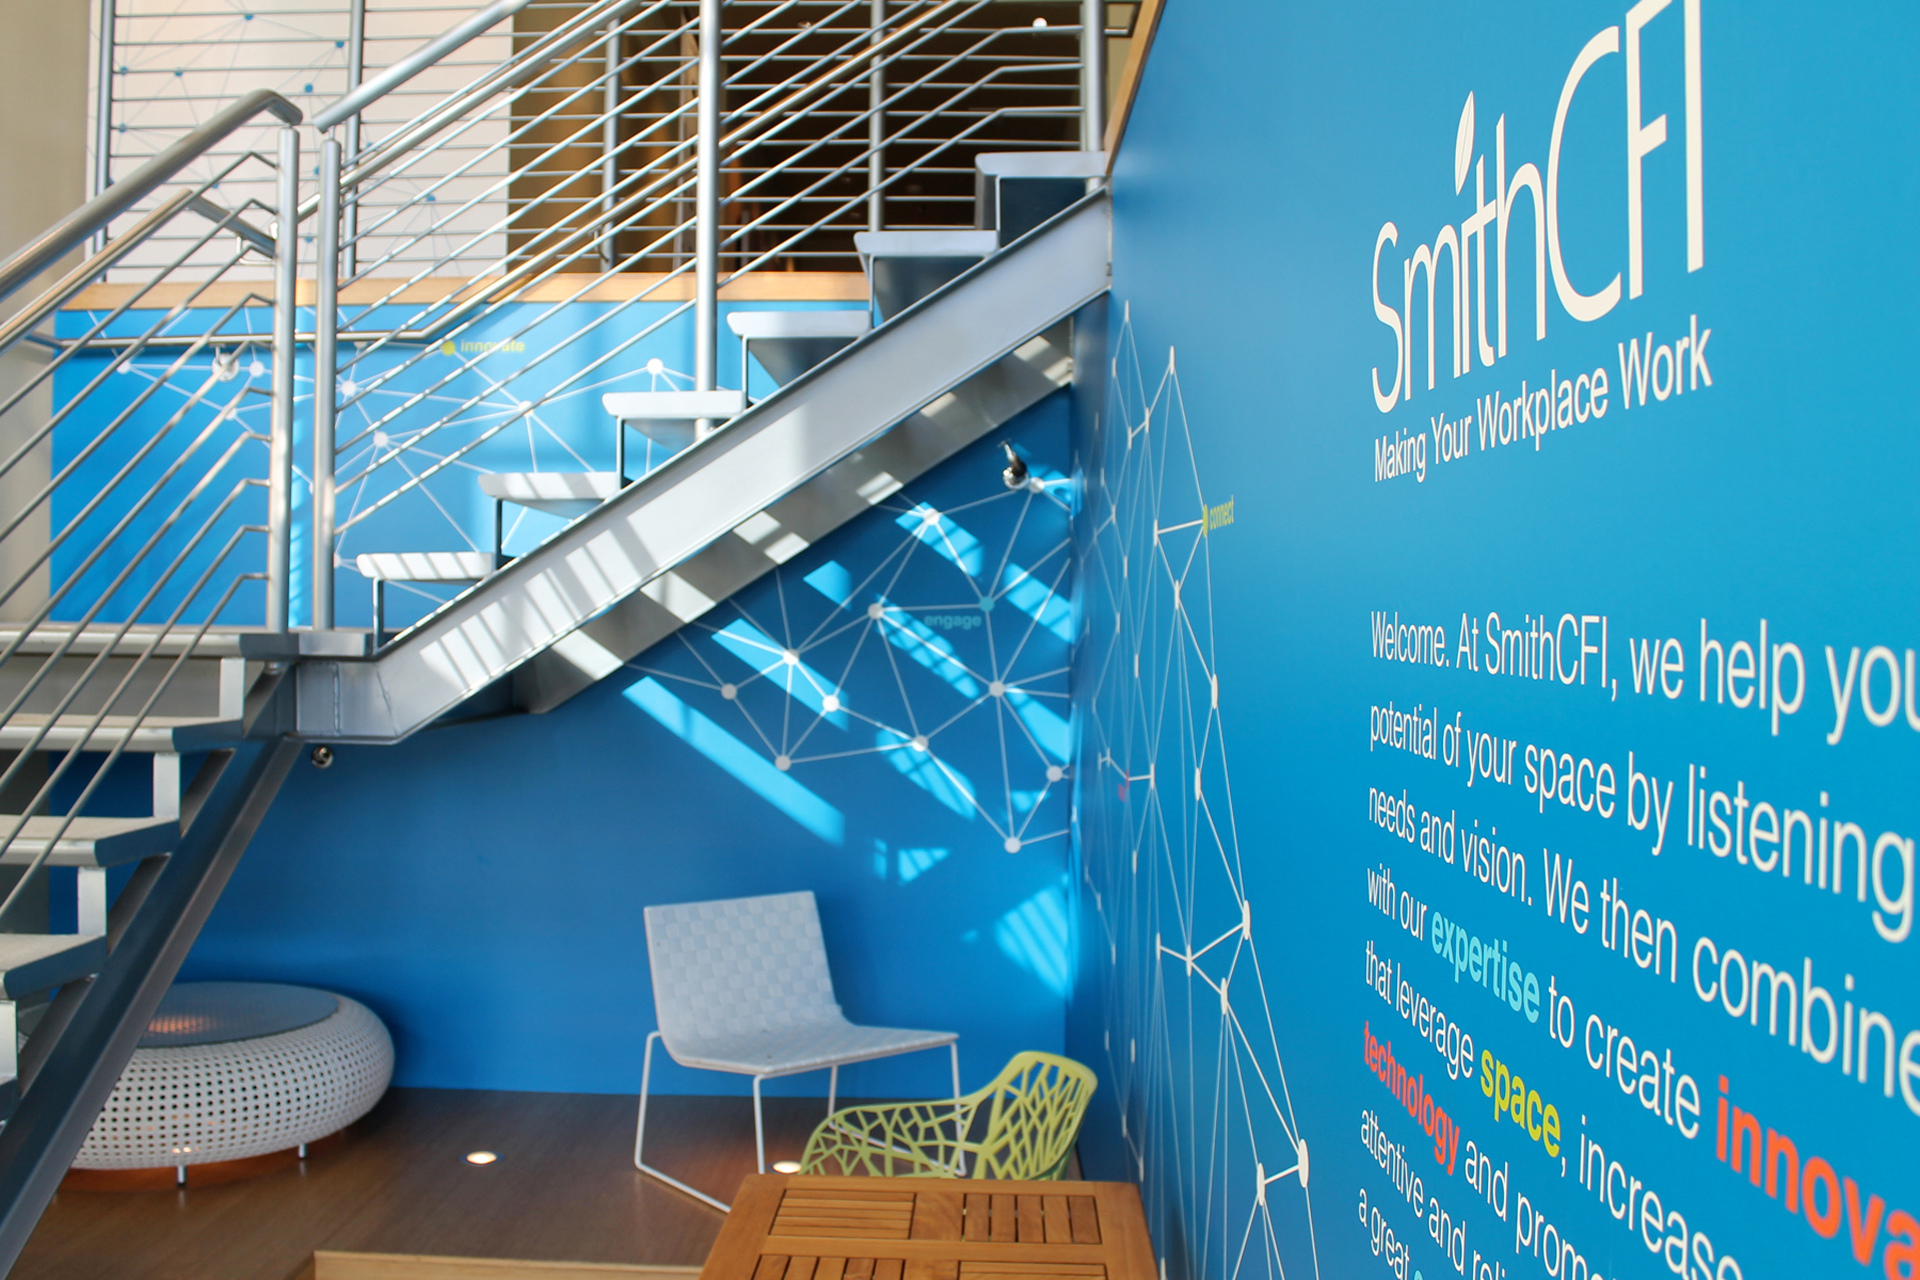 SmithCFI-showroom-1.jpg